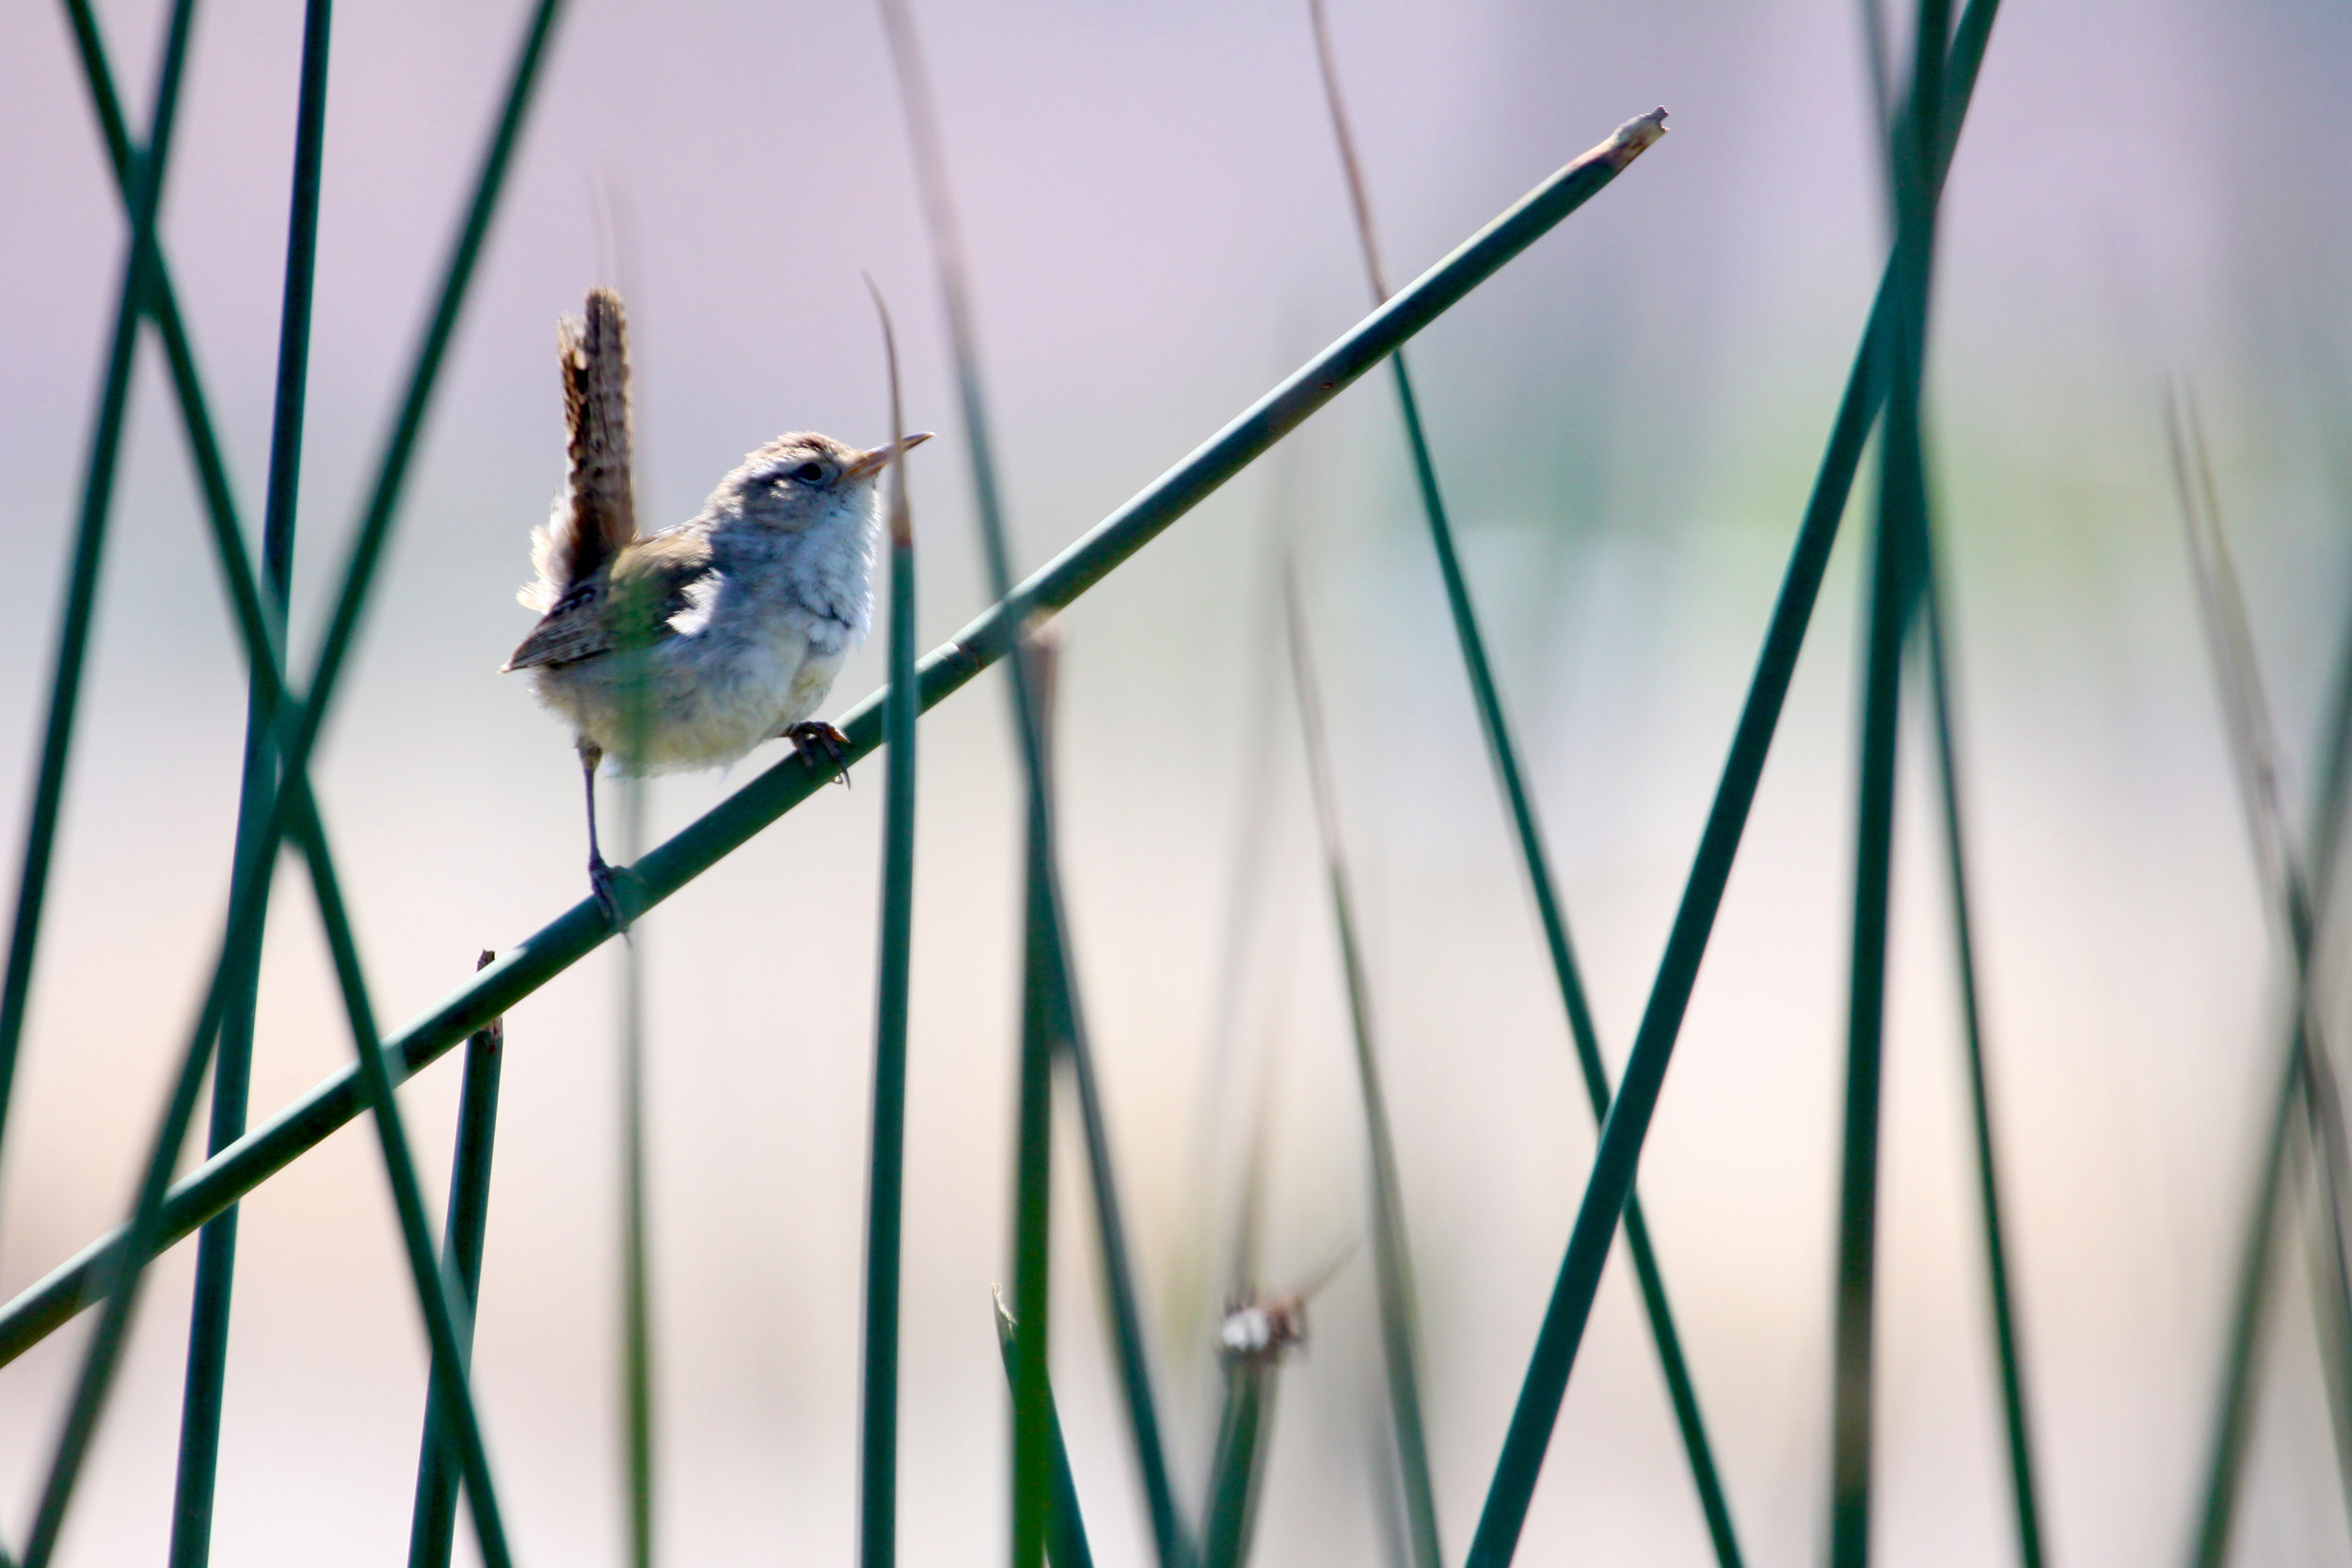 Marsh Wren. Photo by Greg Hachigian.